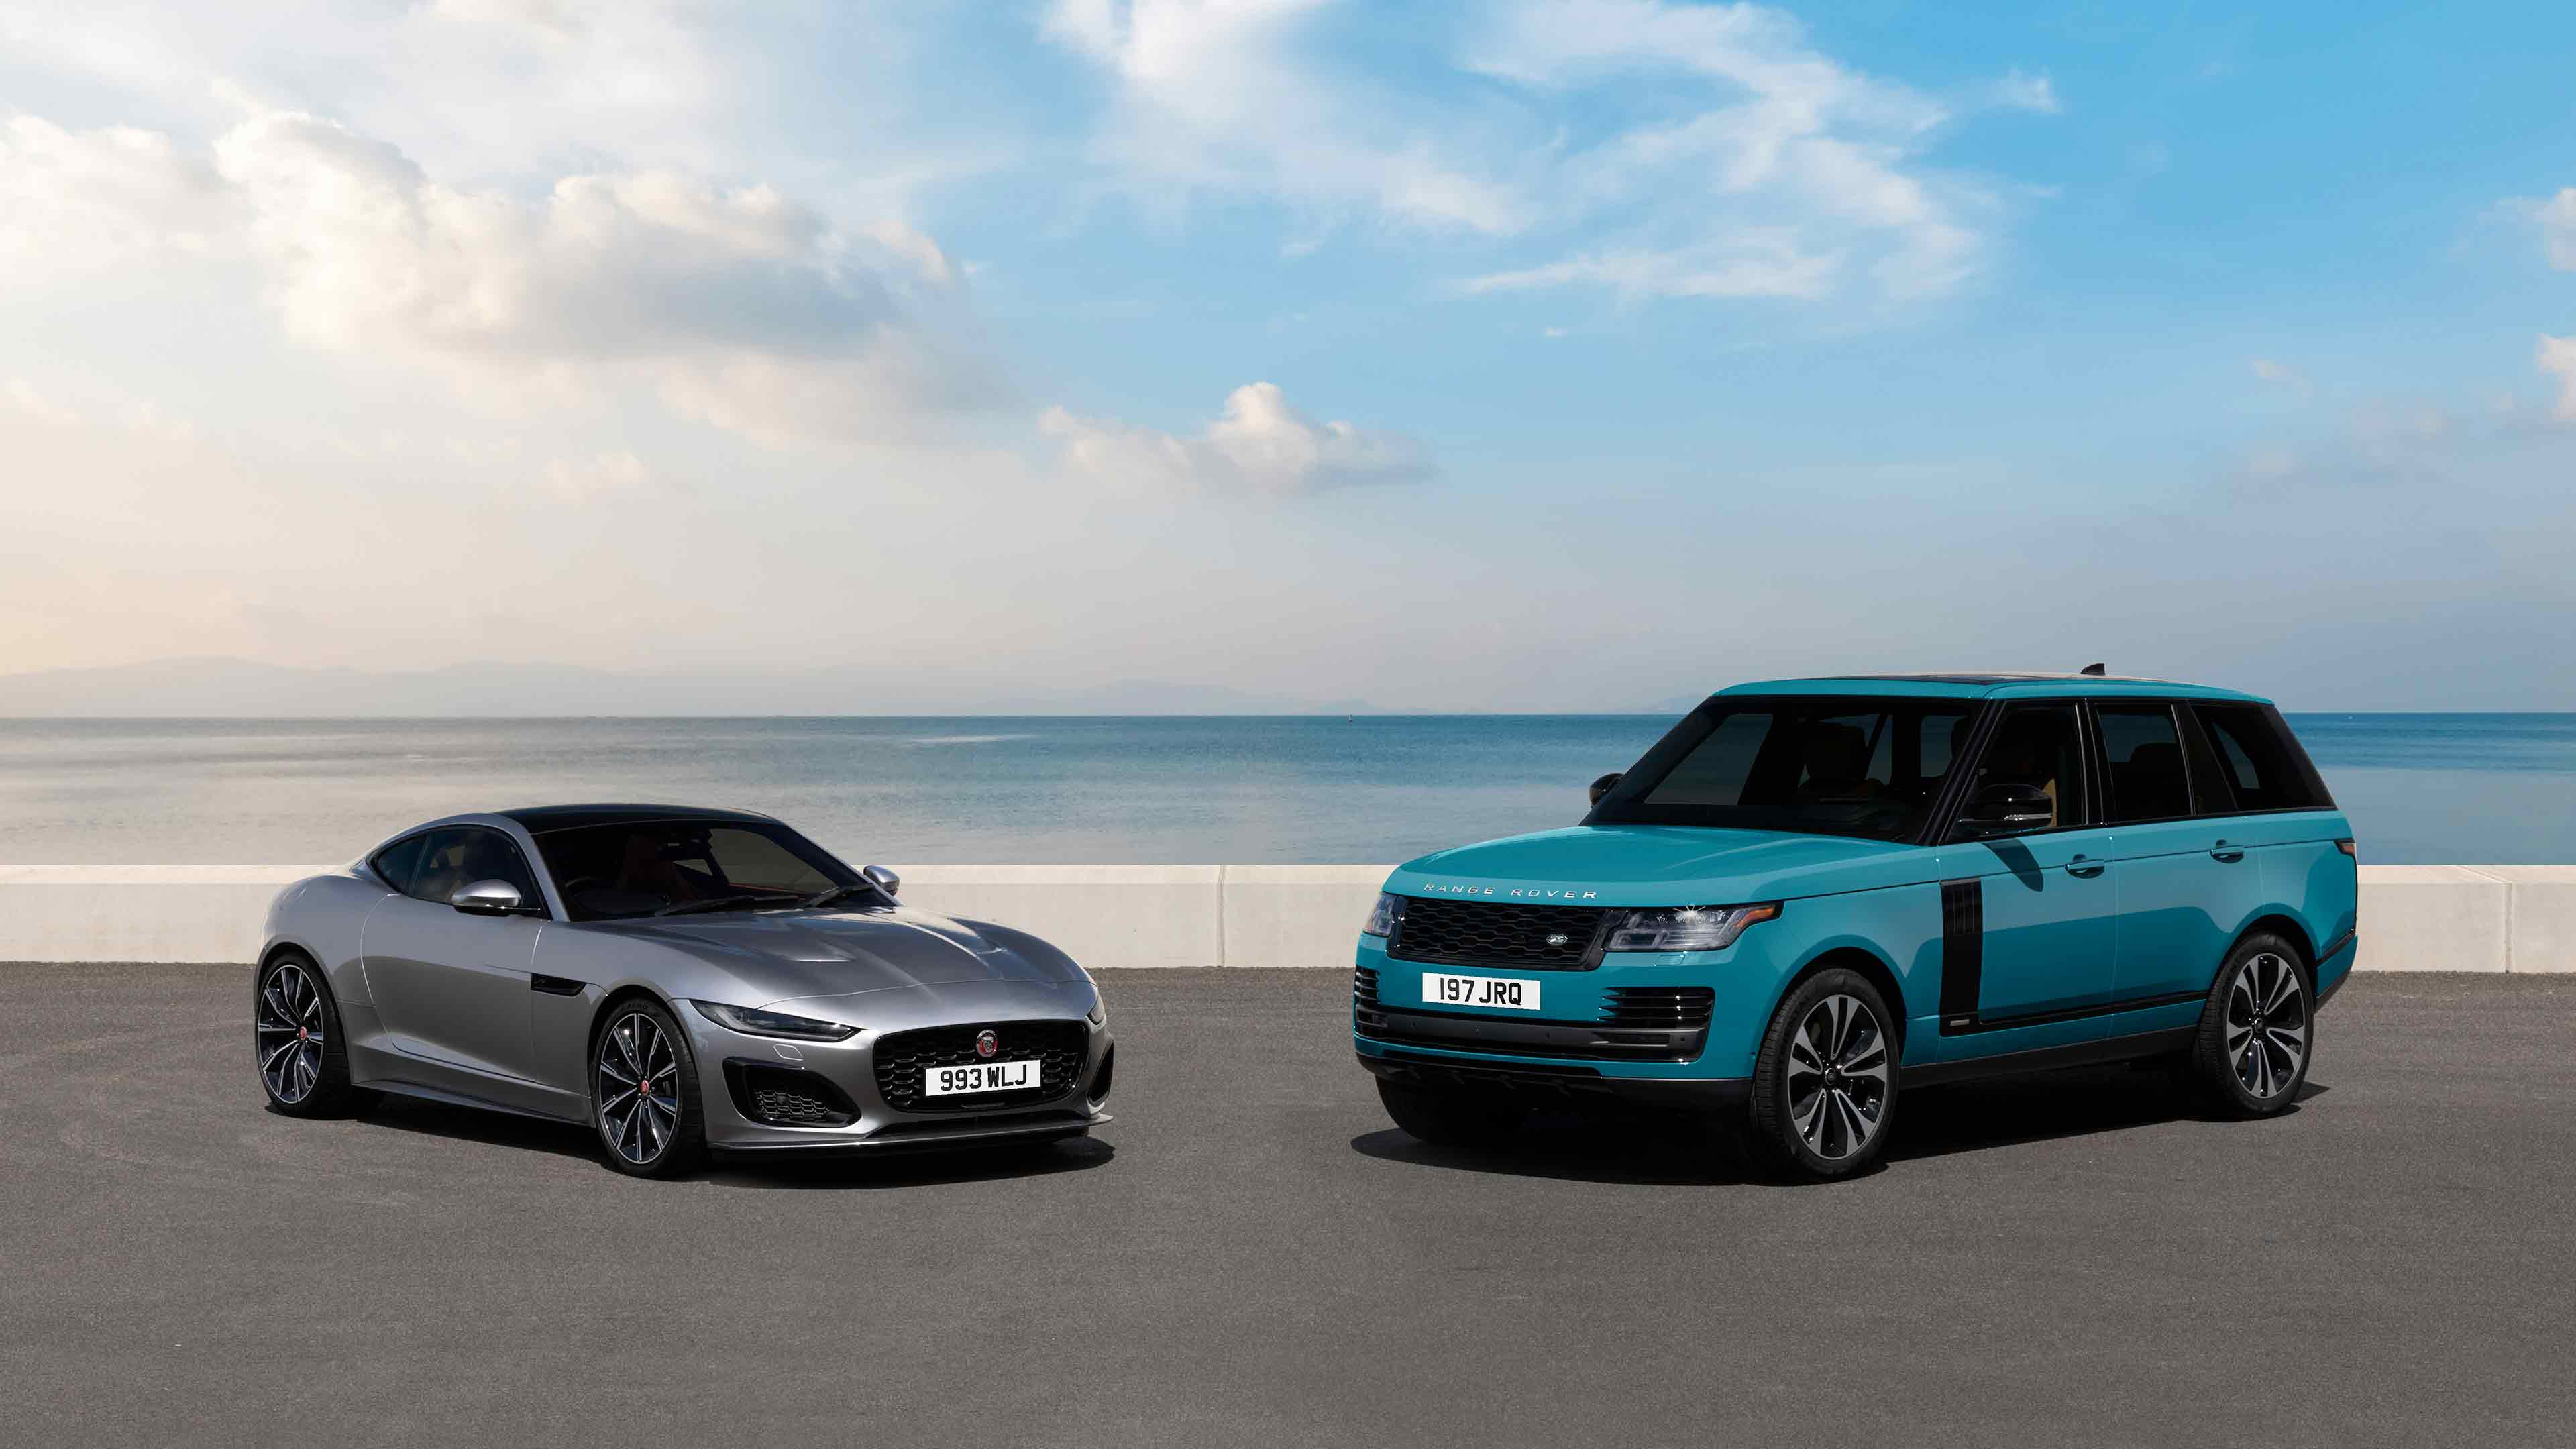 Jaguar Land Rover Mena Offers Customers Warranty Extension Lasting Up To 10 Years